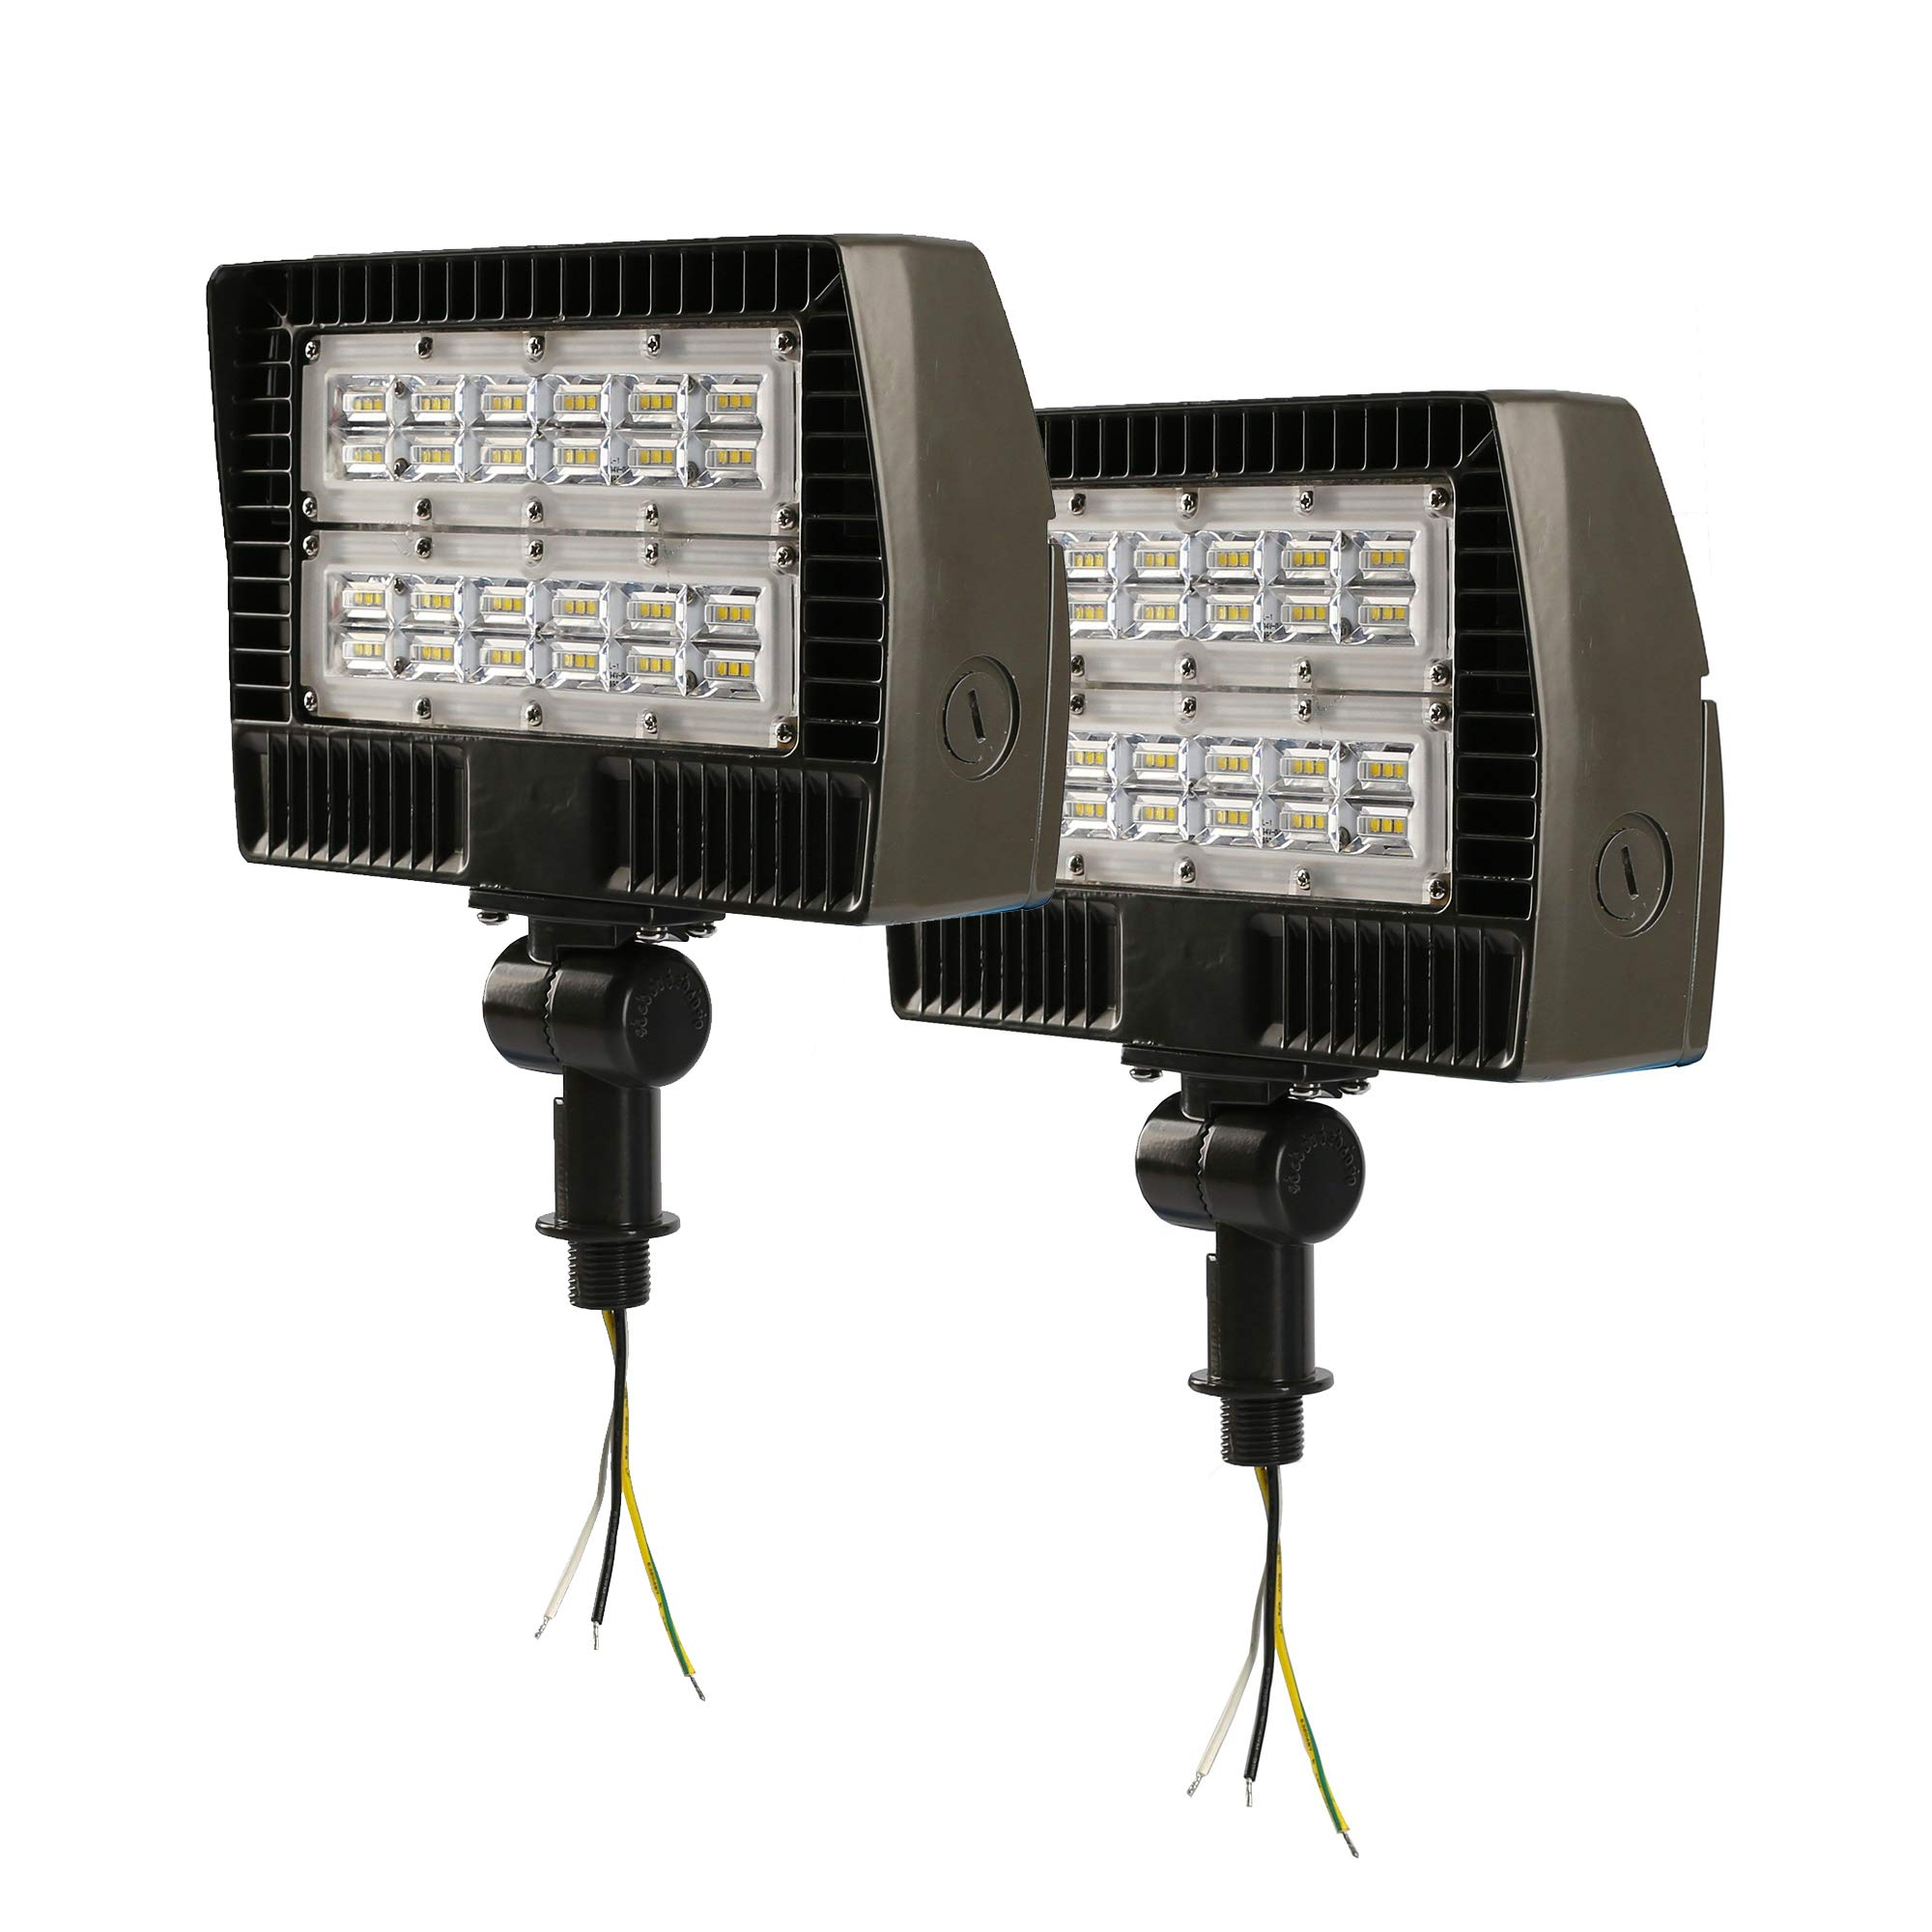 ELECALL LED Flood Light, 50W/5700Lumen, 5000K, Waterproof, IP65, 120-277V, ETL-Listed, 2-Pack